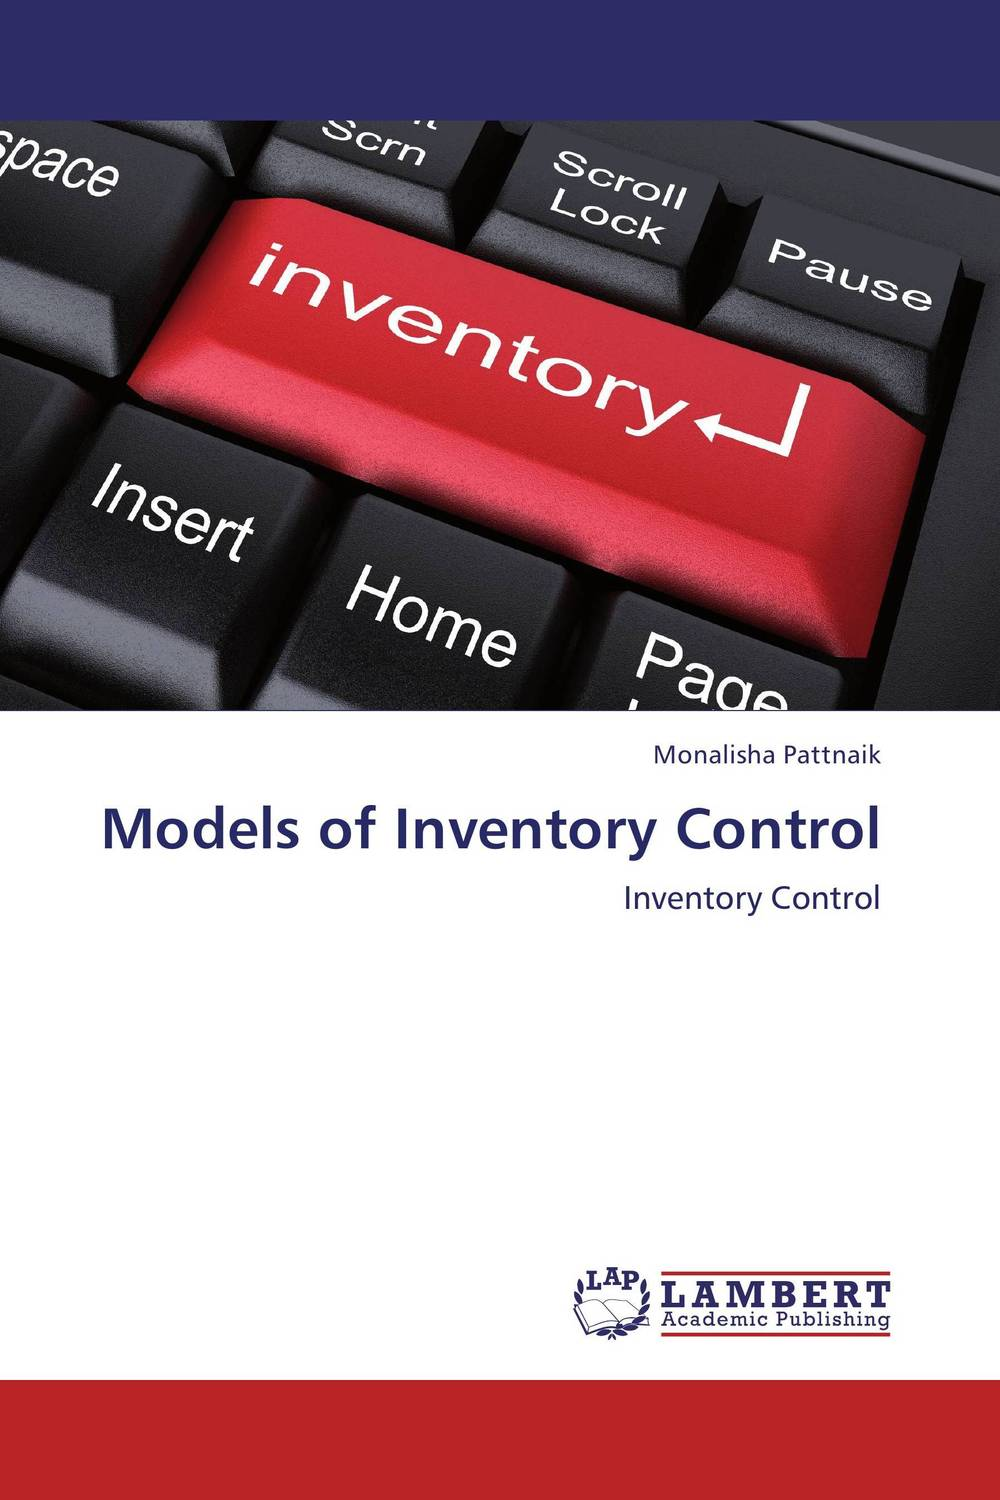 Models of Inventory Control a decision support tool for library book inventory management